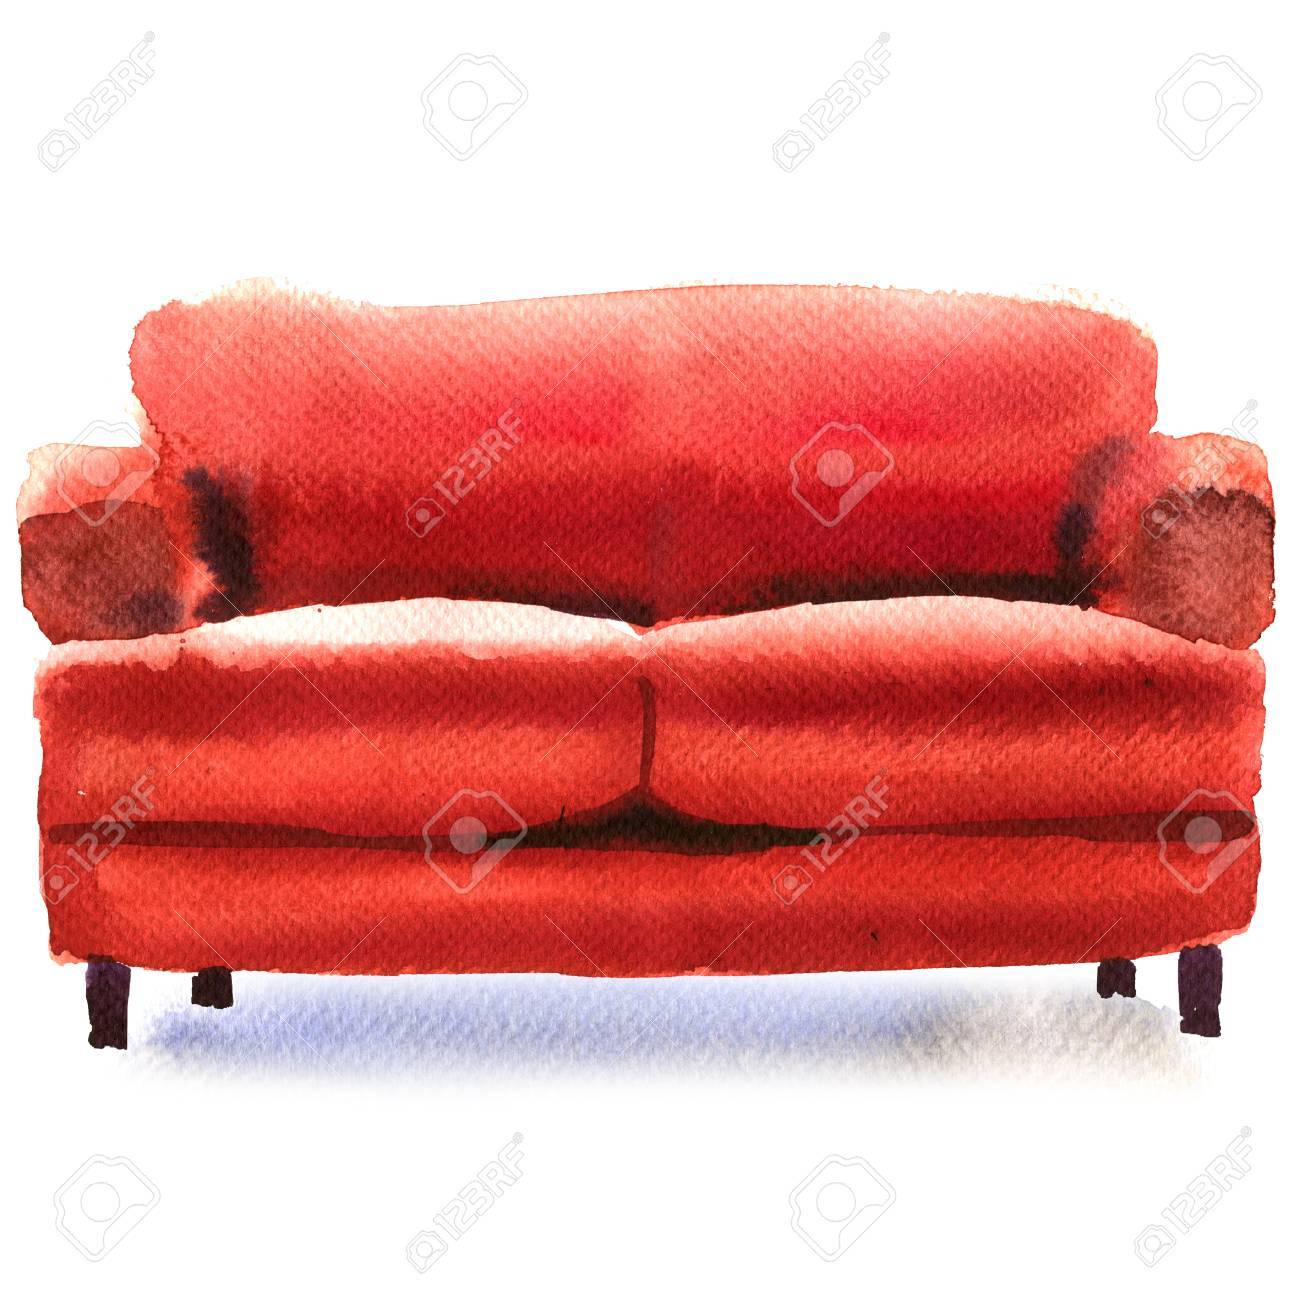 Red Sofa, Comfortable Couch, Isolated, Watercolor Illustration ...